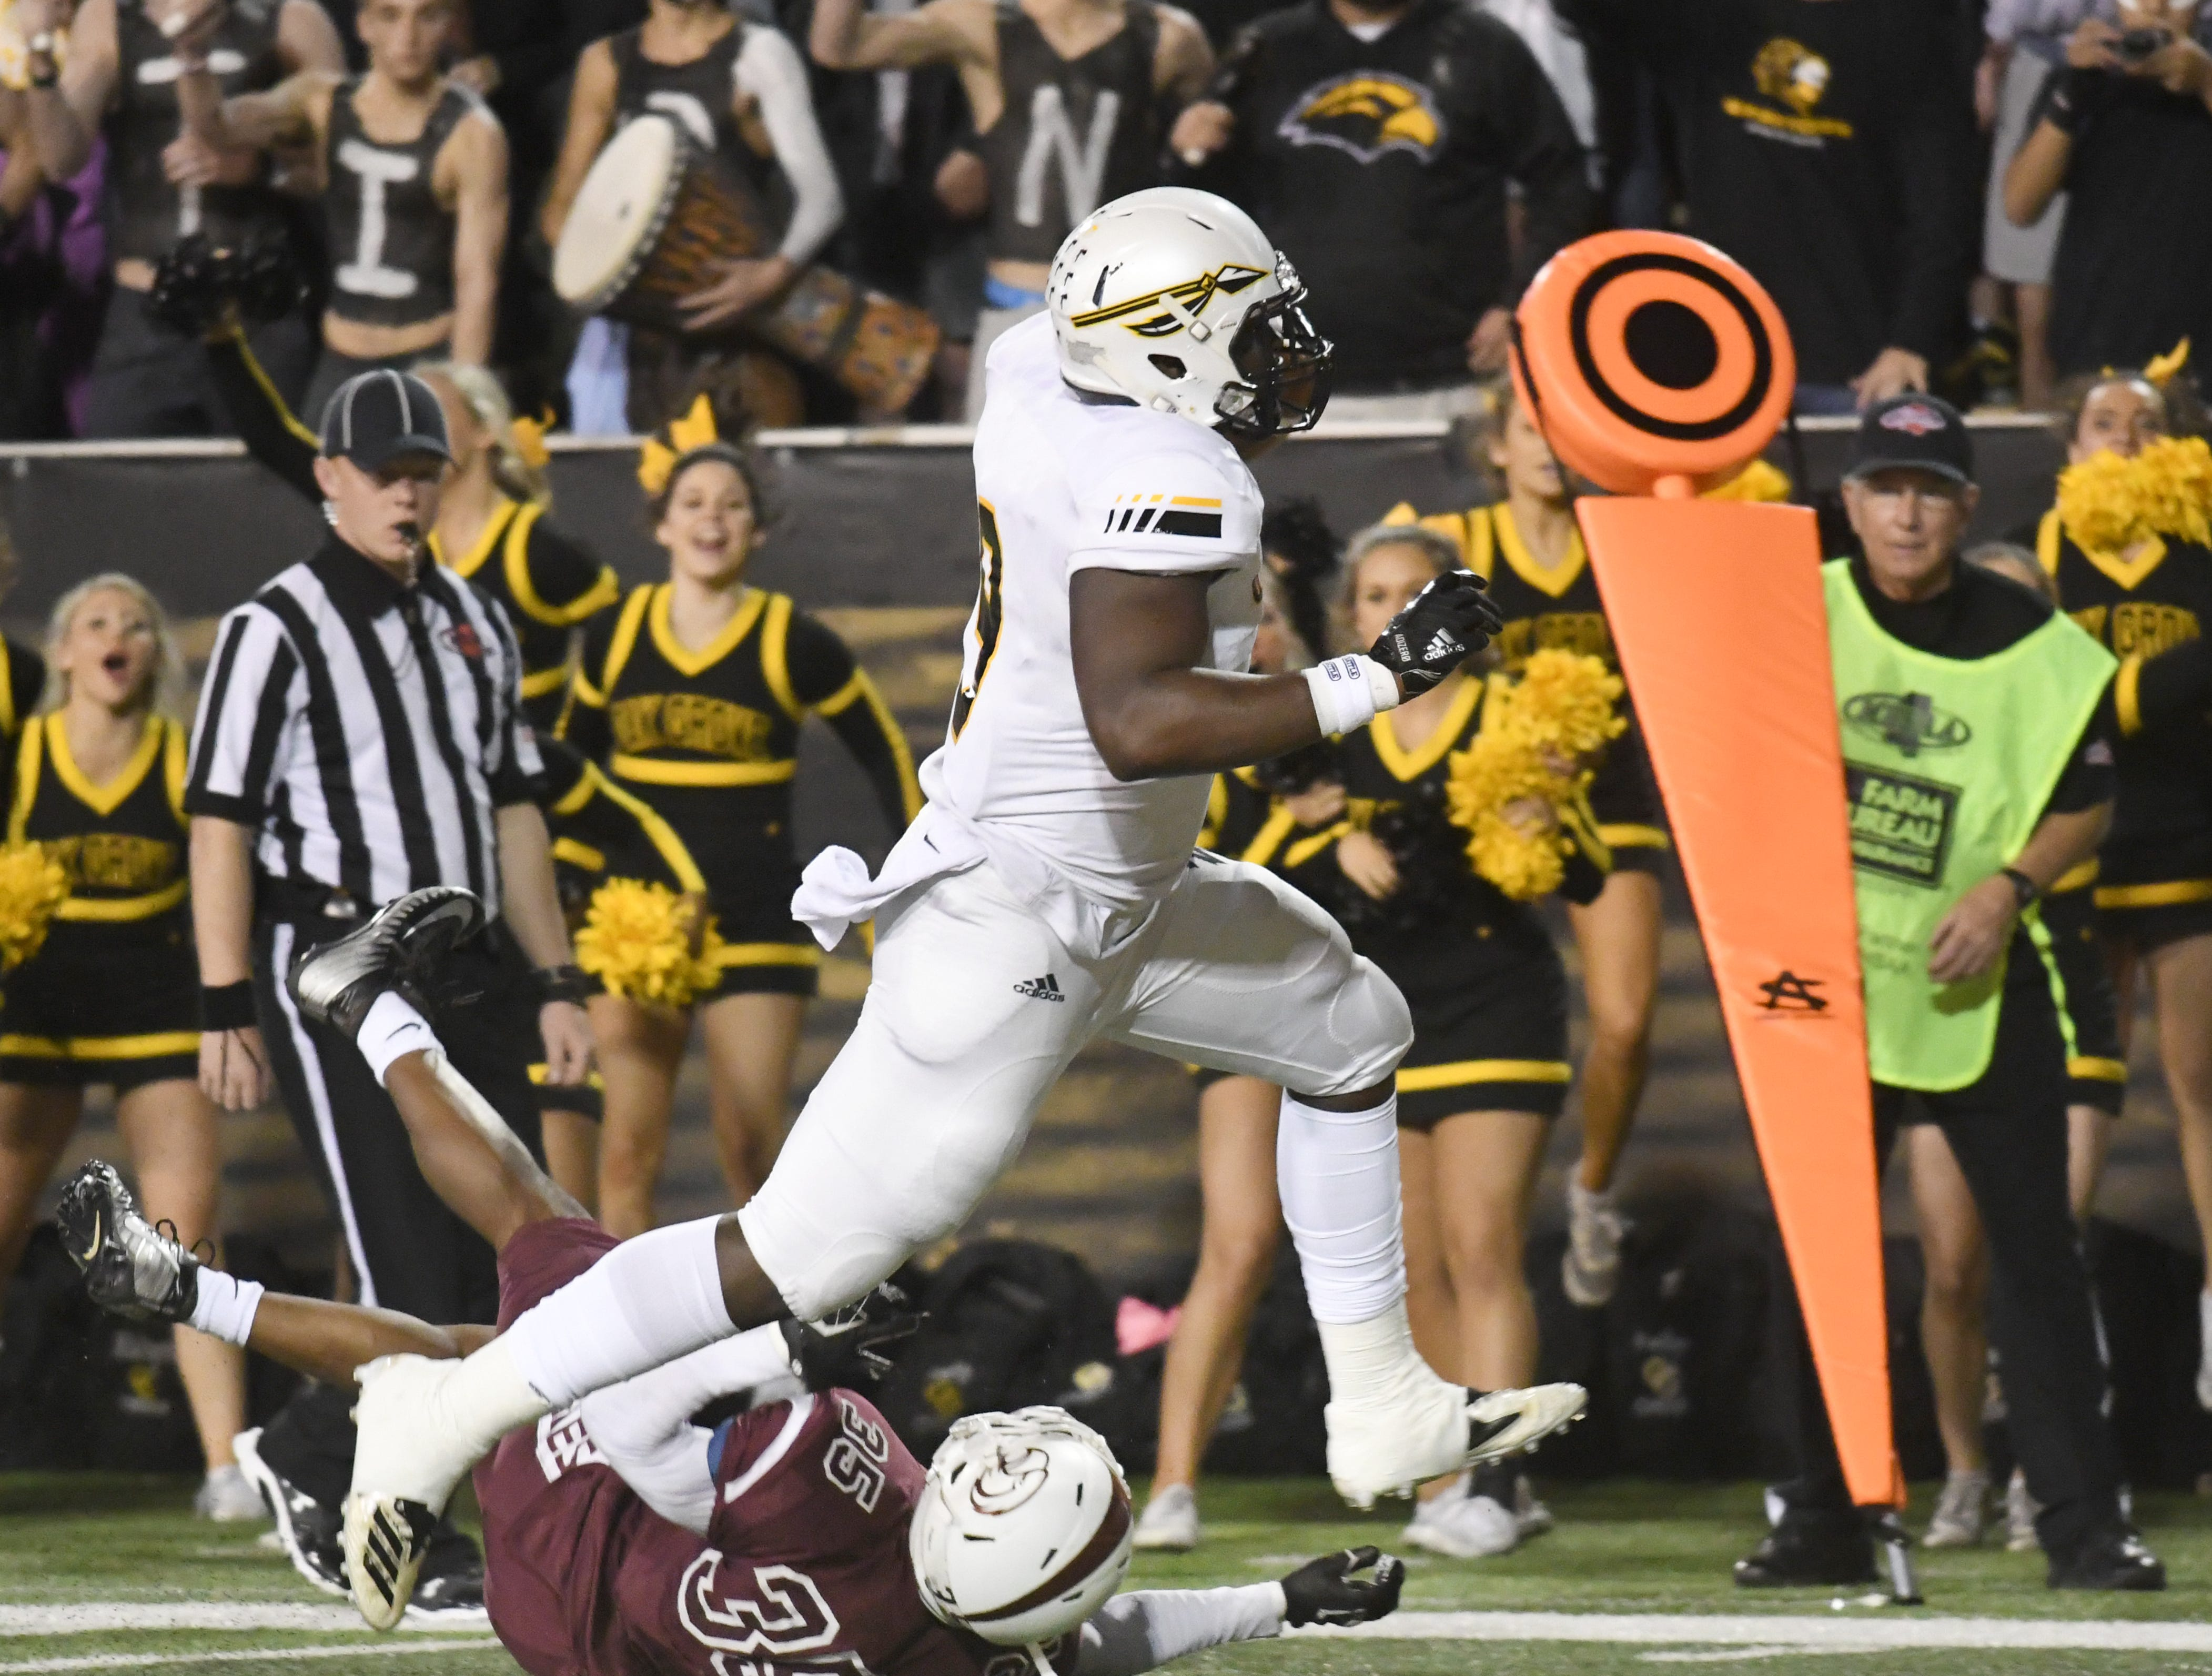 Oak Grove tight end 	Tyson Keys runs over a defender for a touchdown in the 6A state championship game against Horn Lake at M.M. Roberts Stadium in Hattiesburg on Friday, November 30, 2018.